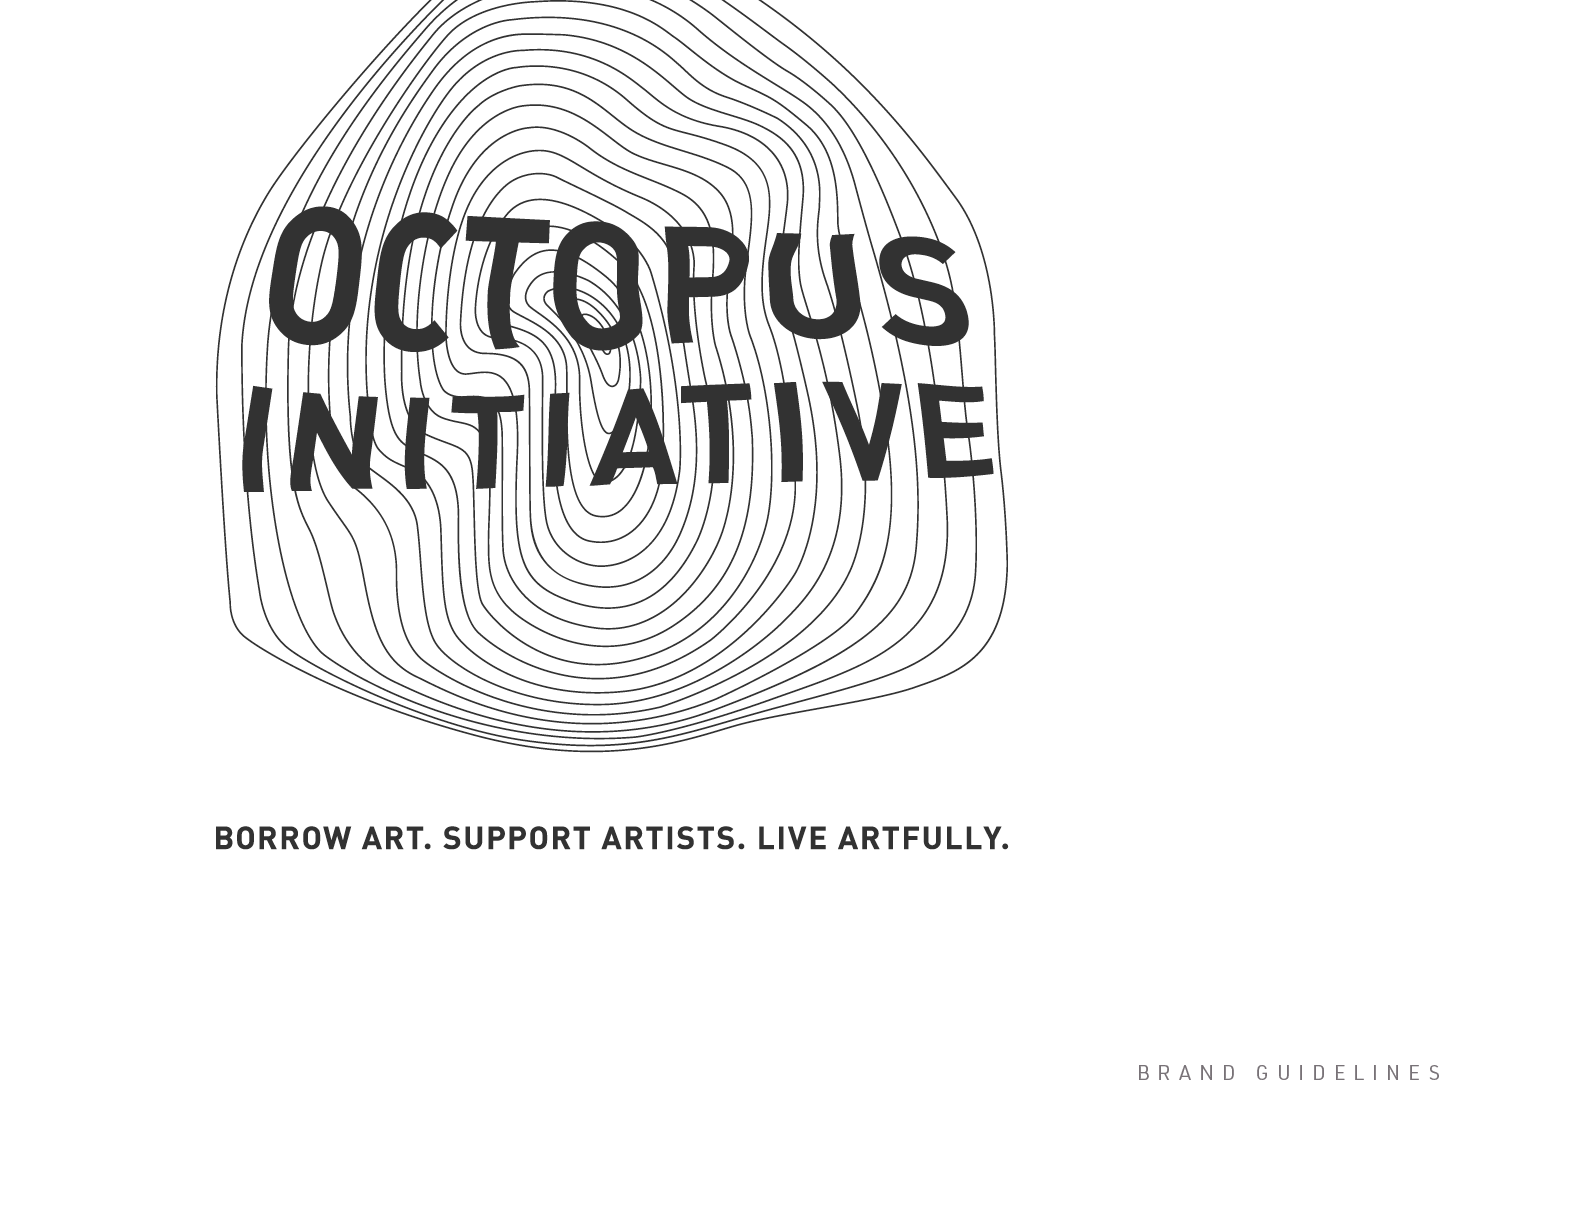 The Octopus Initiative Brand Guidelines - Page 1